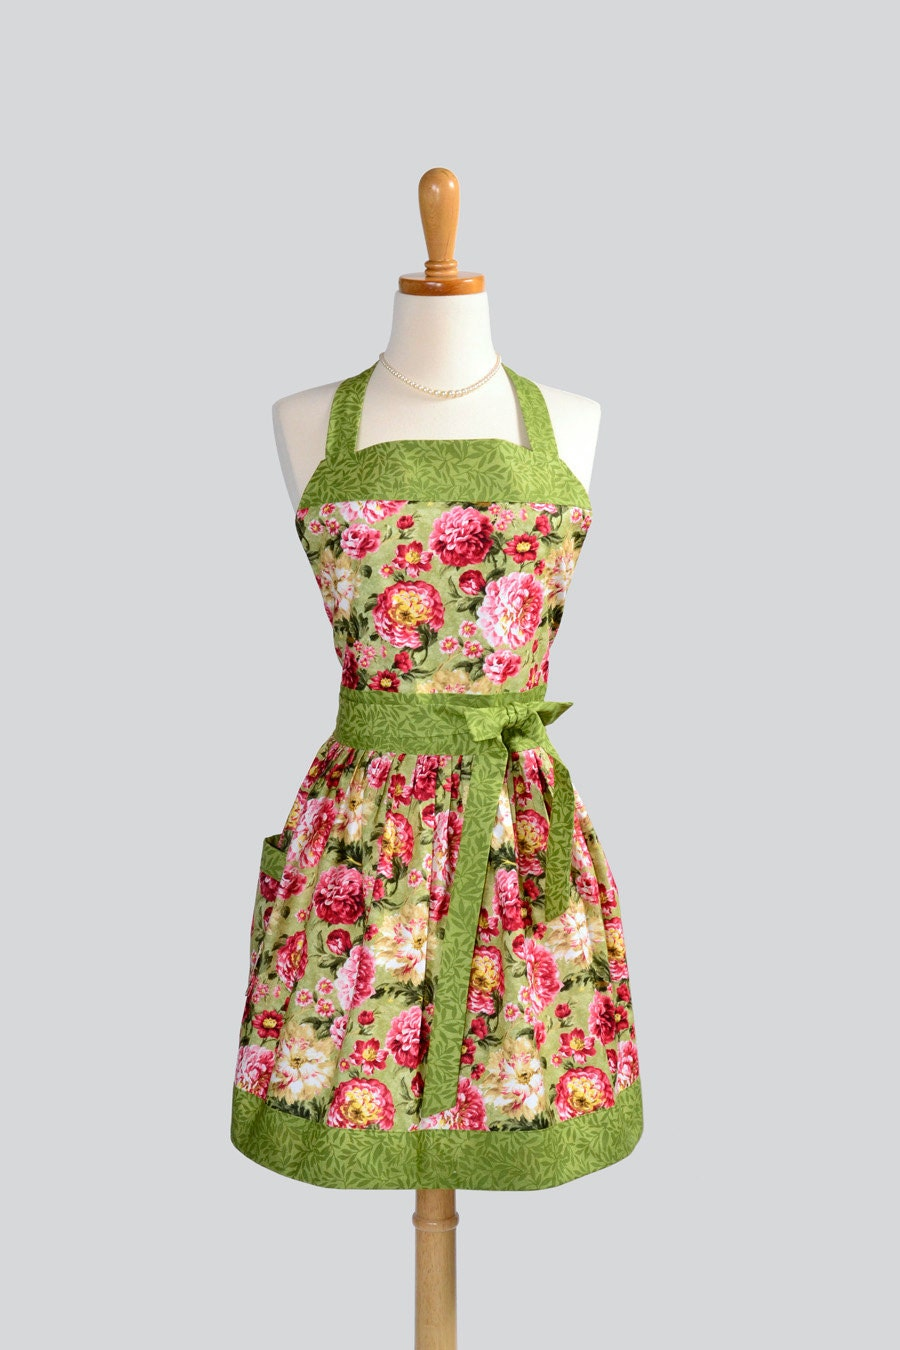 Womens Bib Full Apron - Handmade English Garden Pink and Green Floral Cute Kitchen Apron